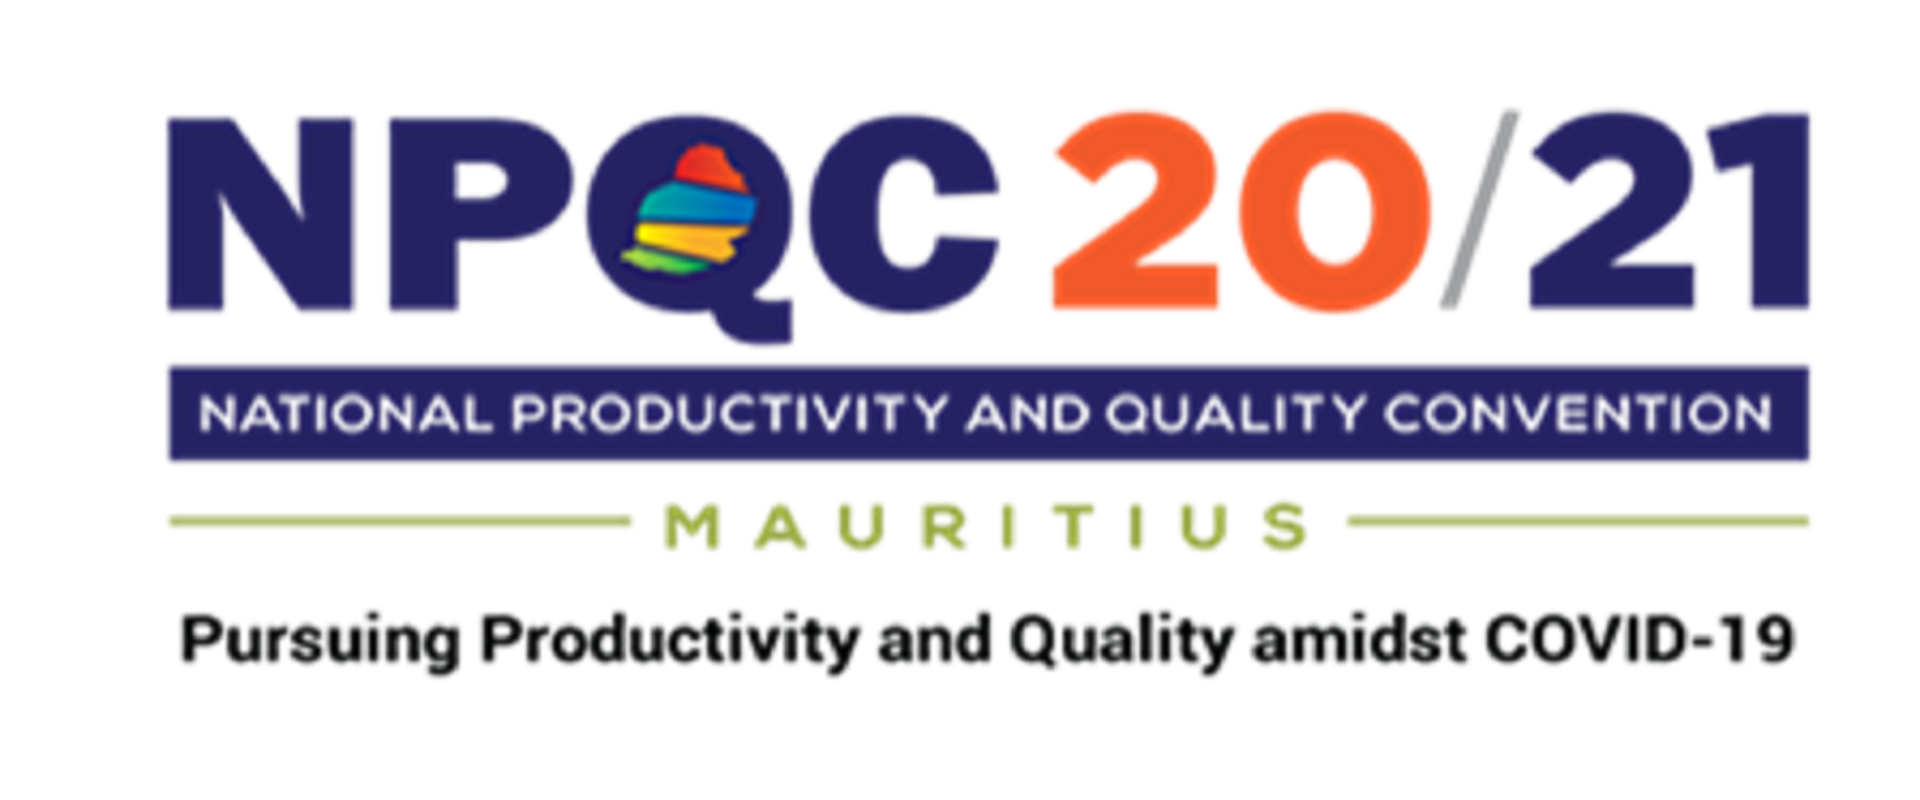 NPCC extends registration deadline for the NPQC 2020/2021